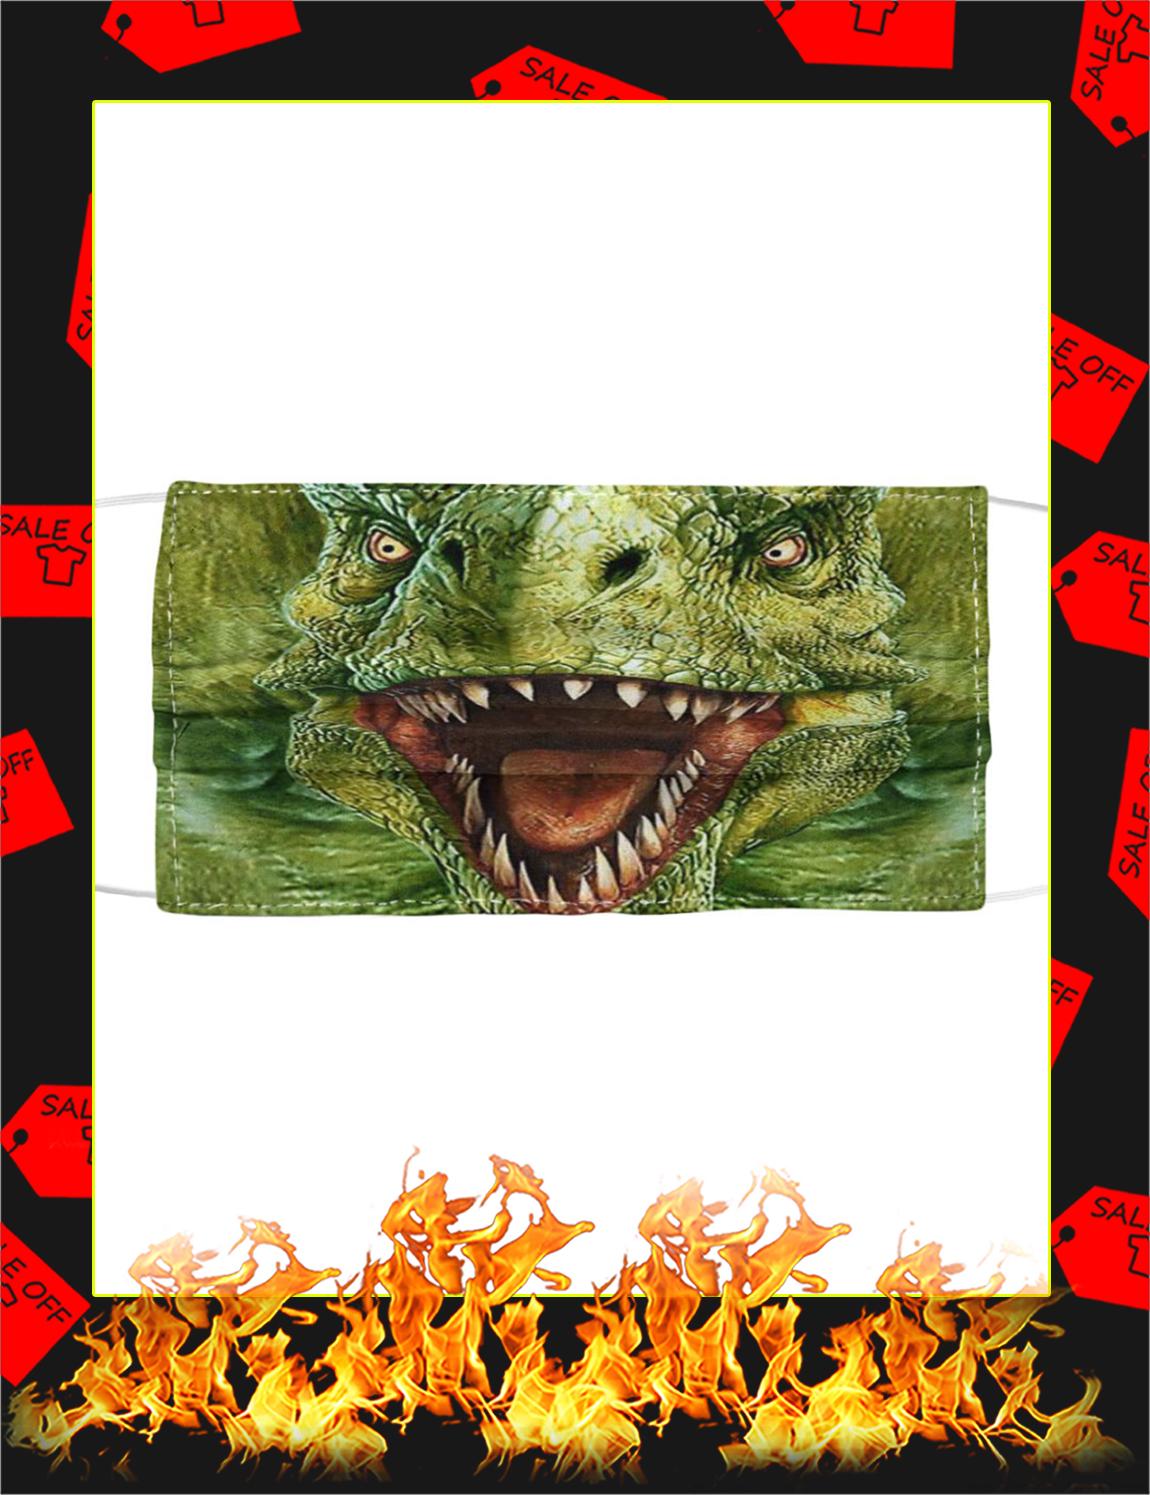 Dinosaur face mask - Picture 1